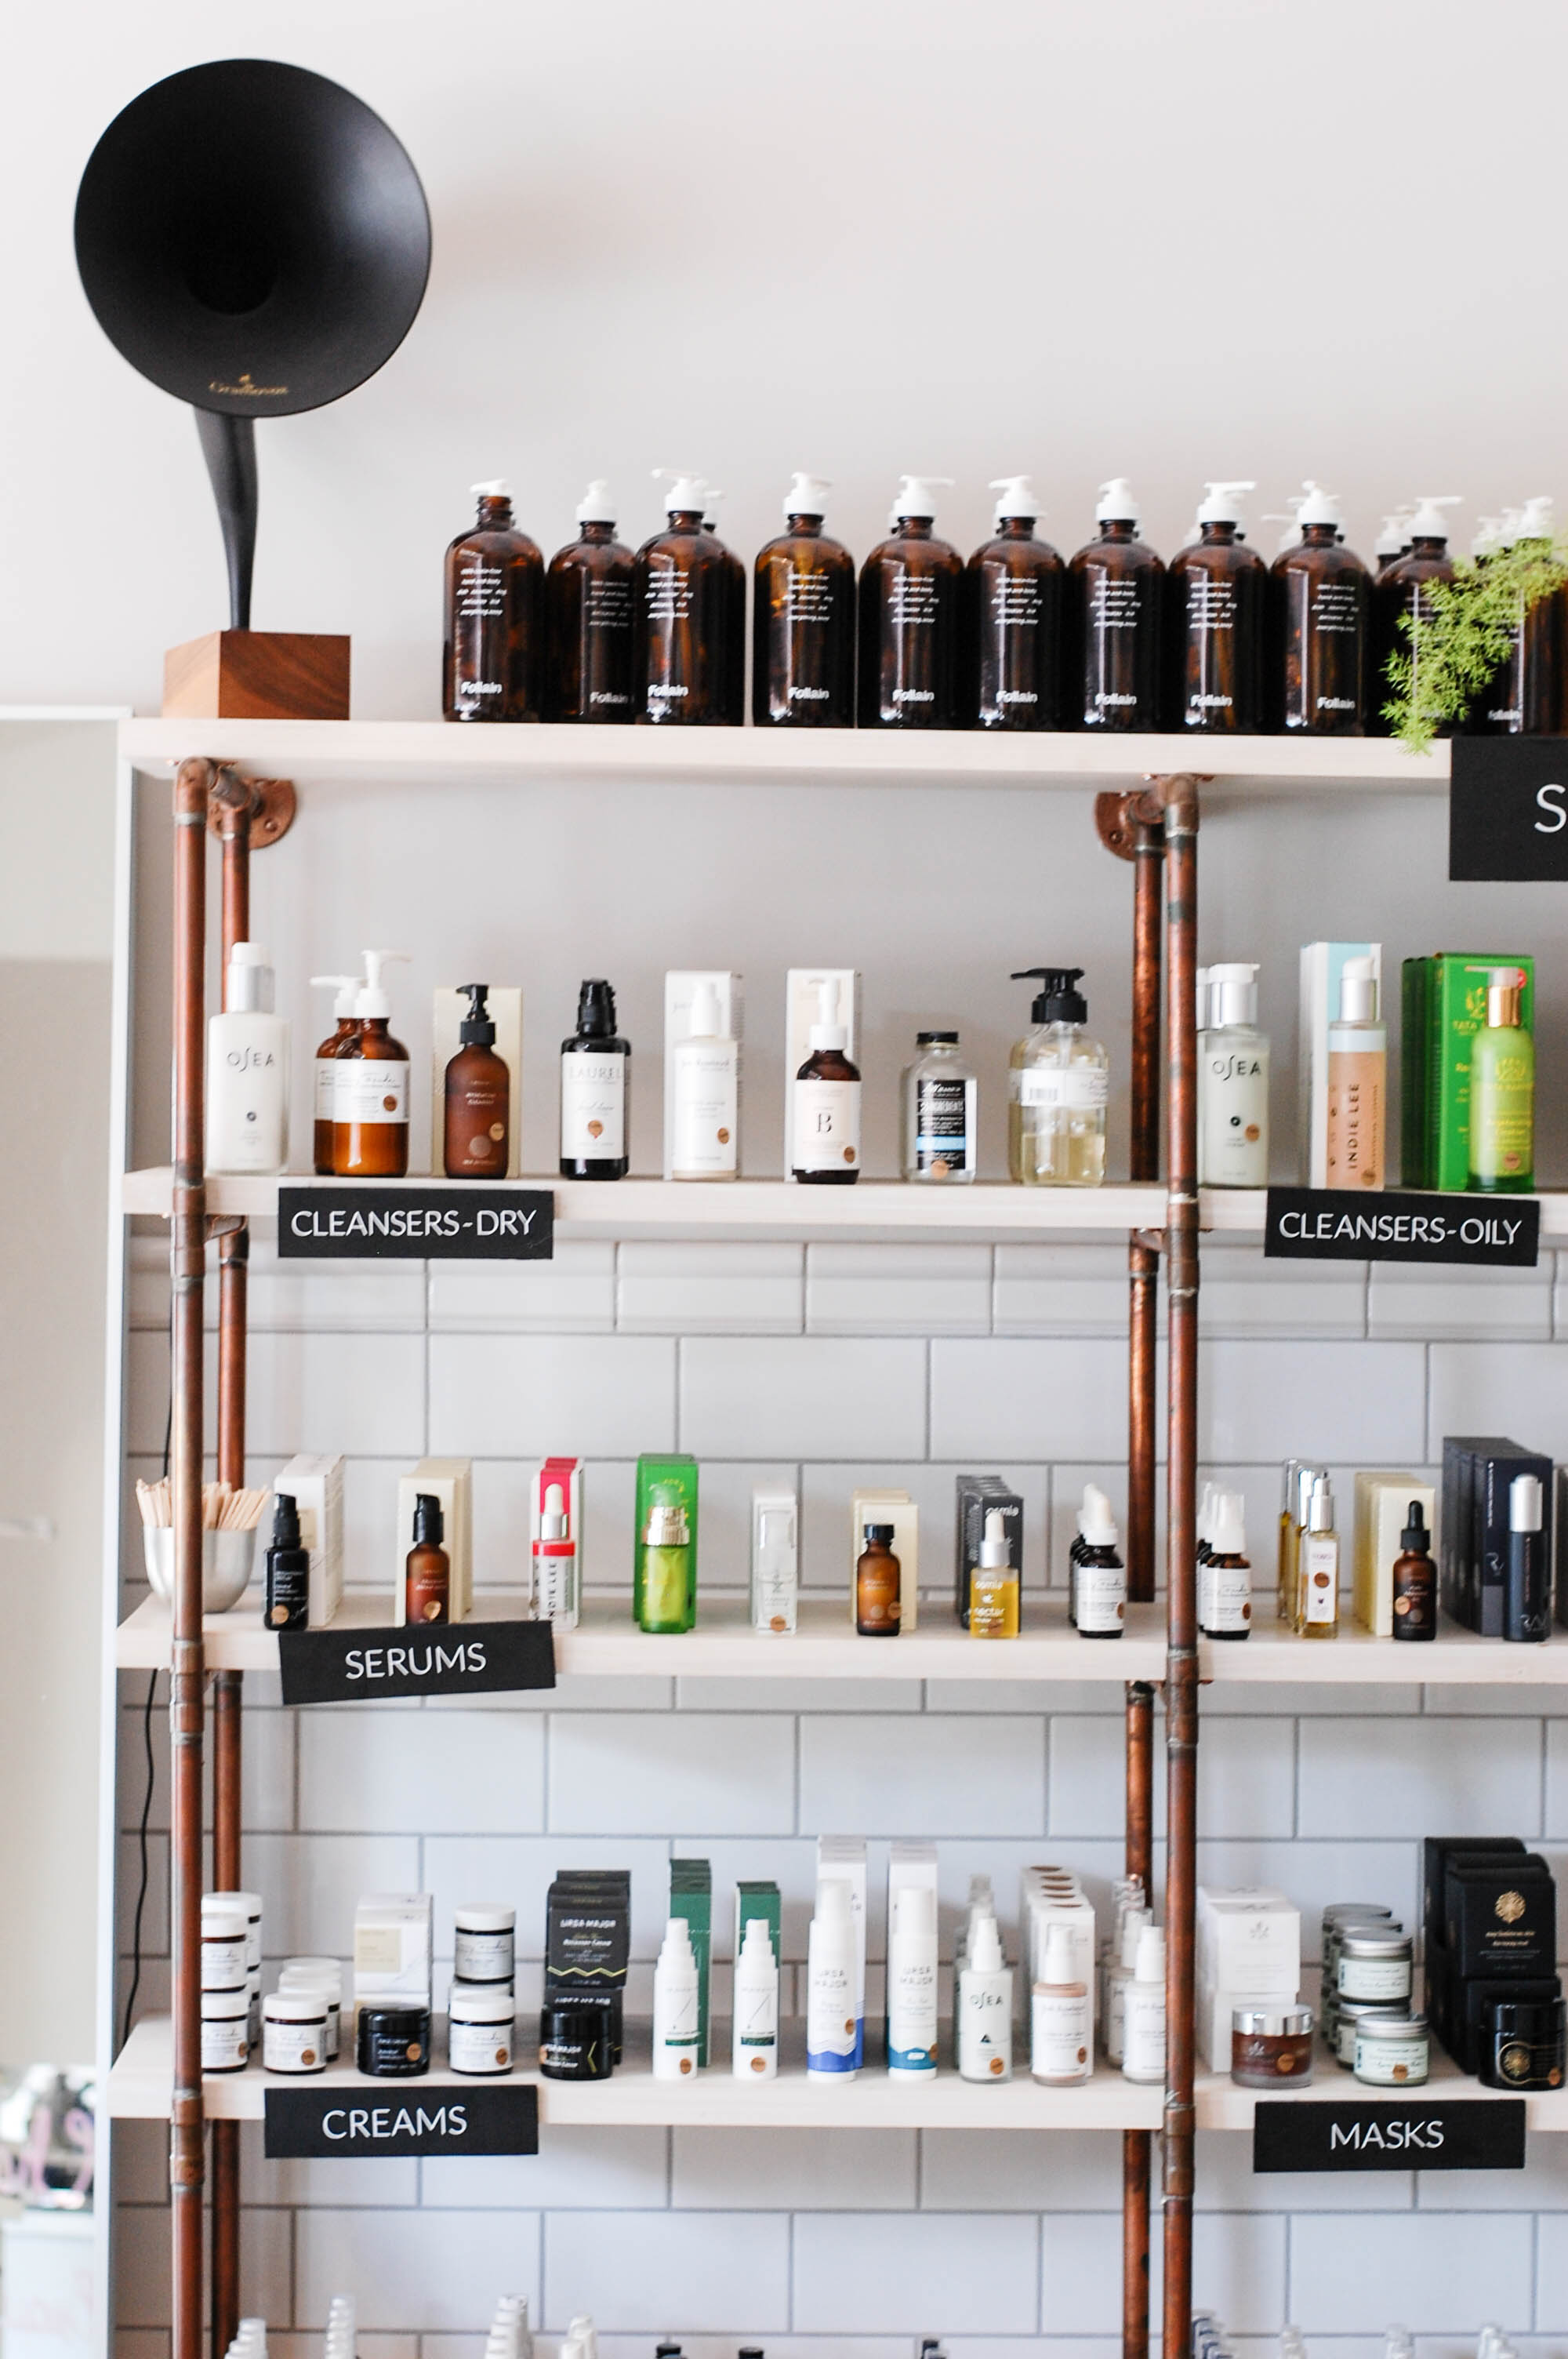 OSEA at Follian Boston is offering a skincare routine giveaway on Instagram